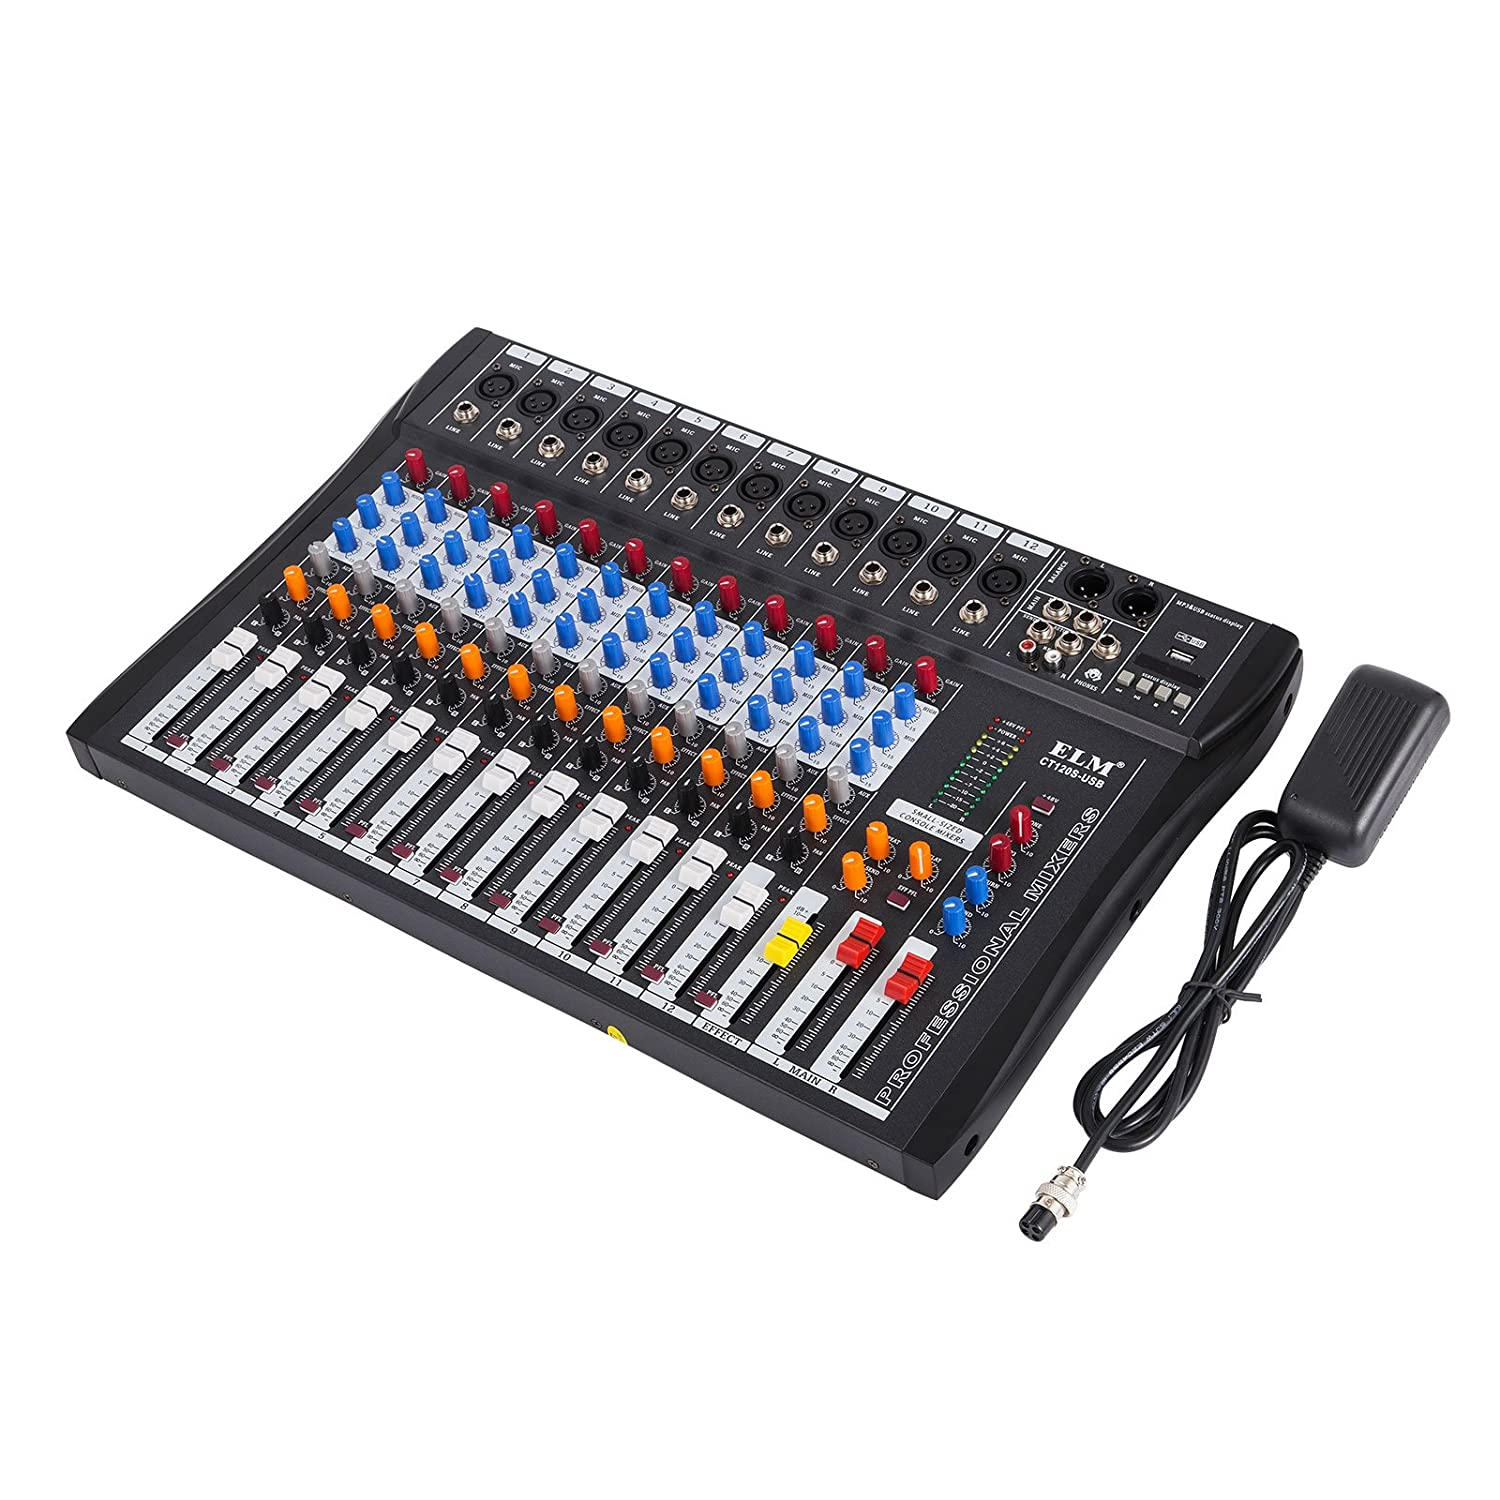 VEVOR 12 Channel Audio Mixer with 48V Phantom Power Mixing Console USB MP3 Audio Sound Mixer for Recording DJ Stage Karaoke Music Appreciation